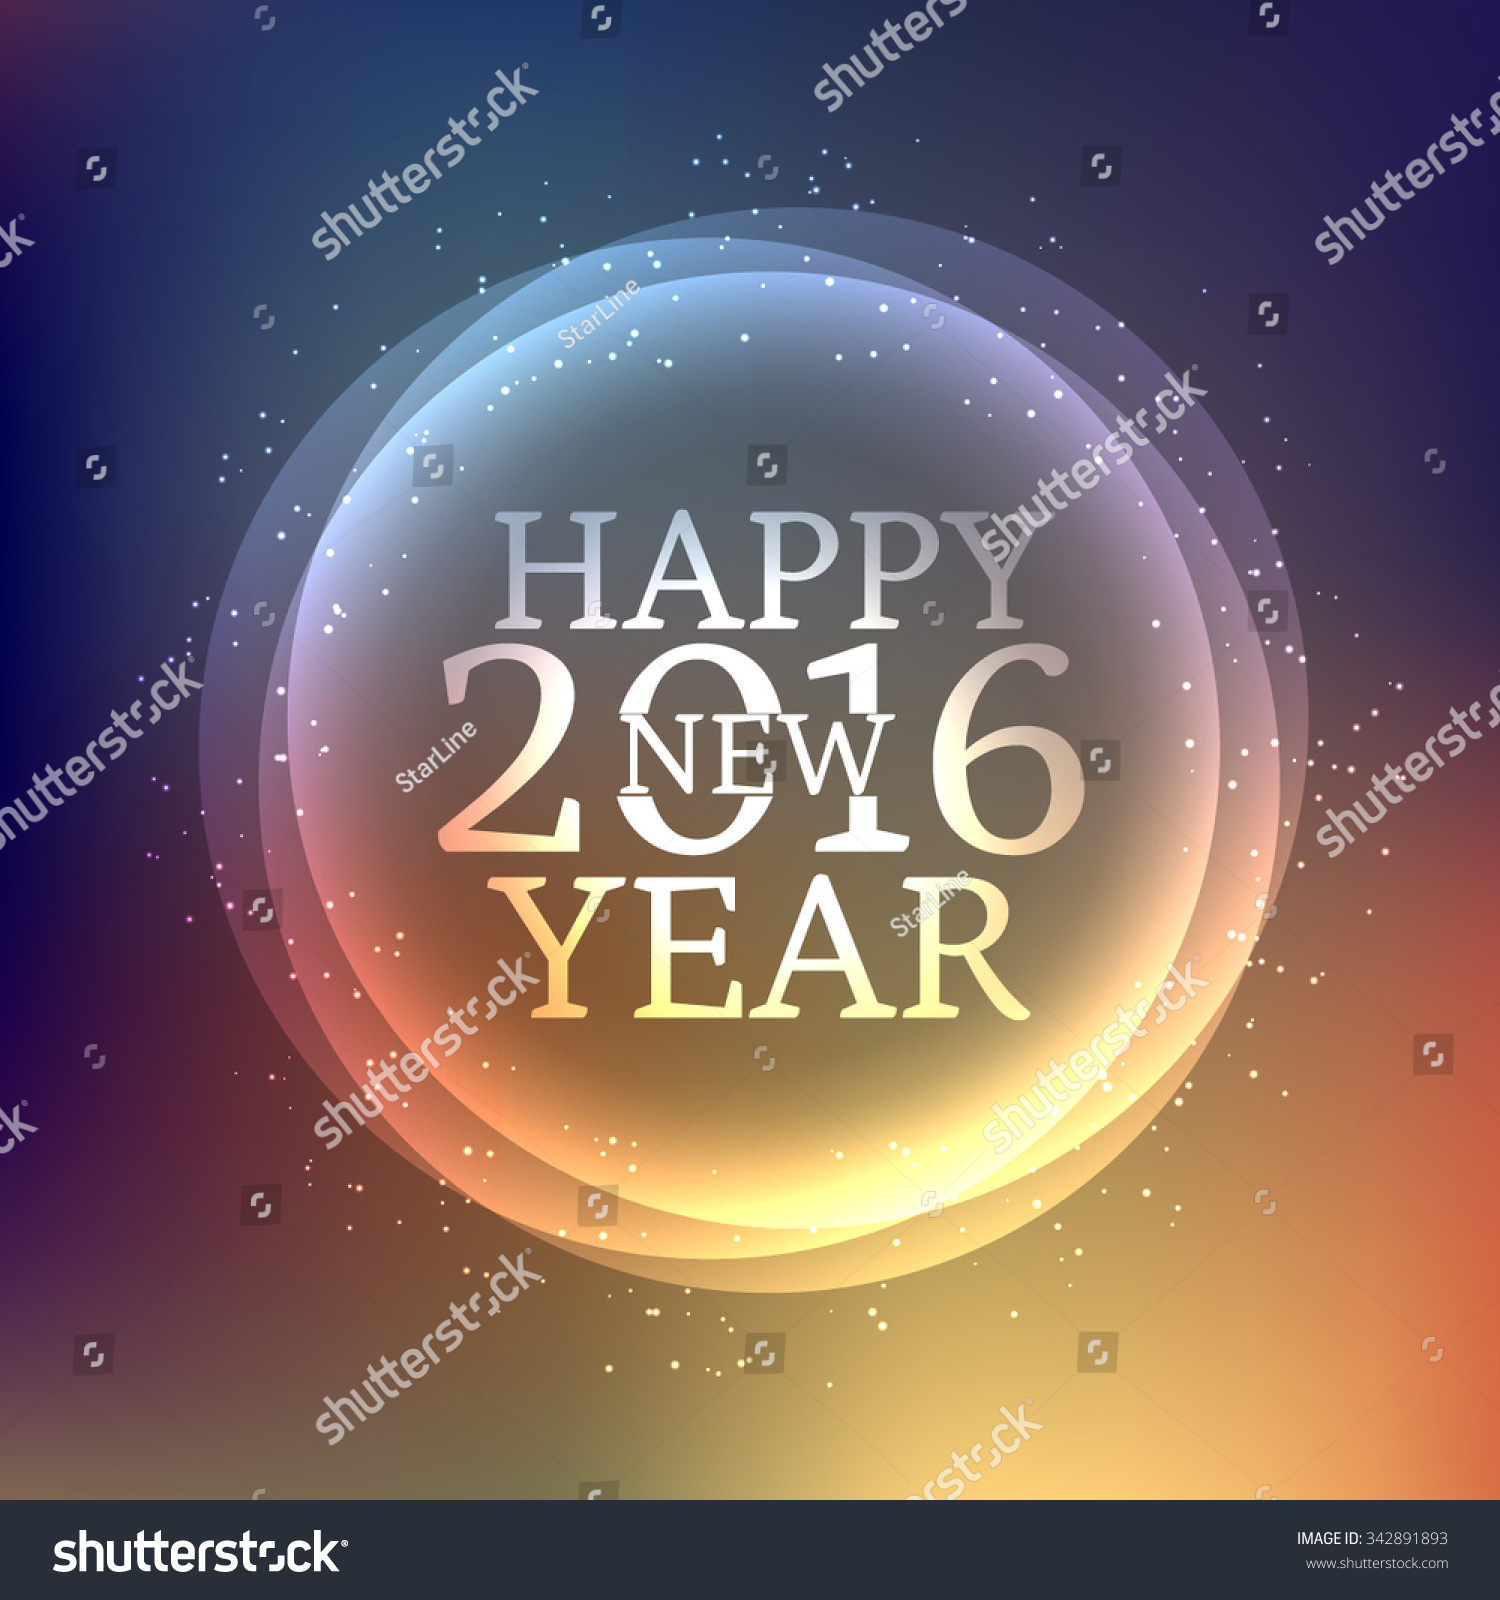 Happy New Year Greeting Wishes Stock Vector 2018 342891893